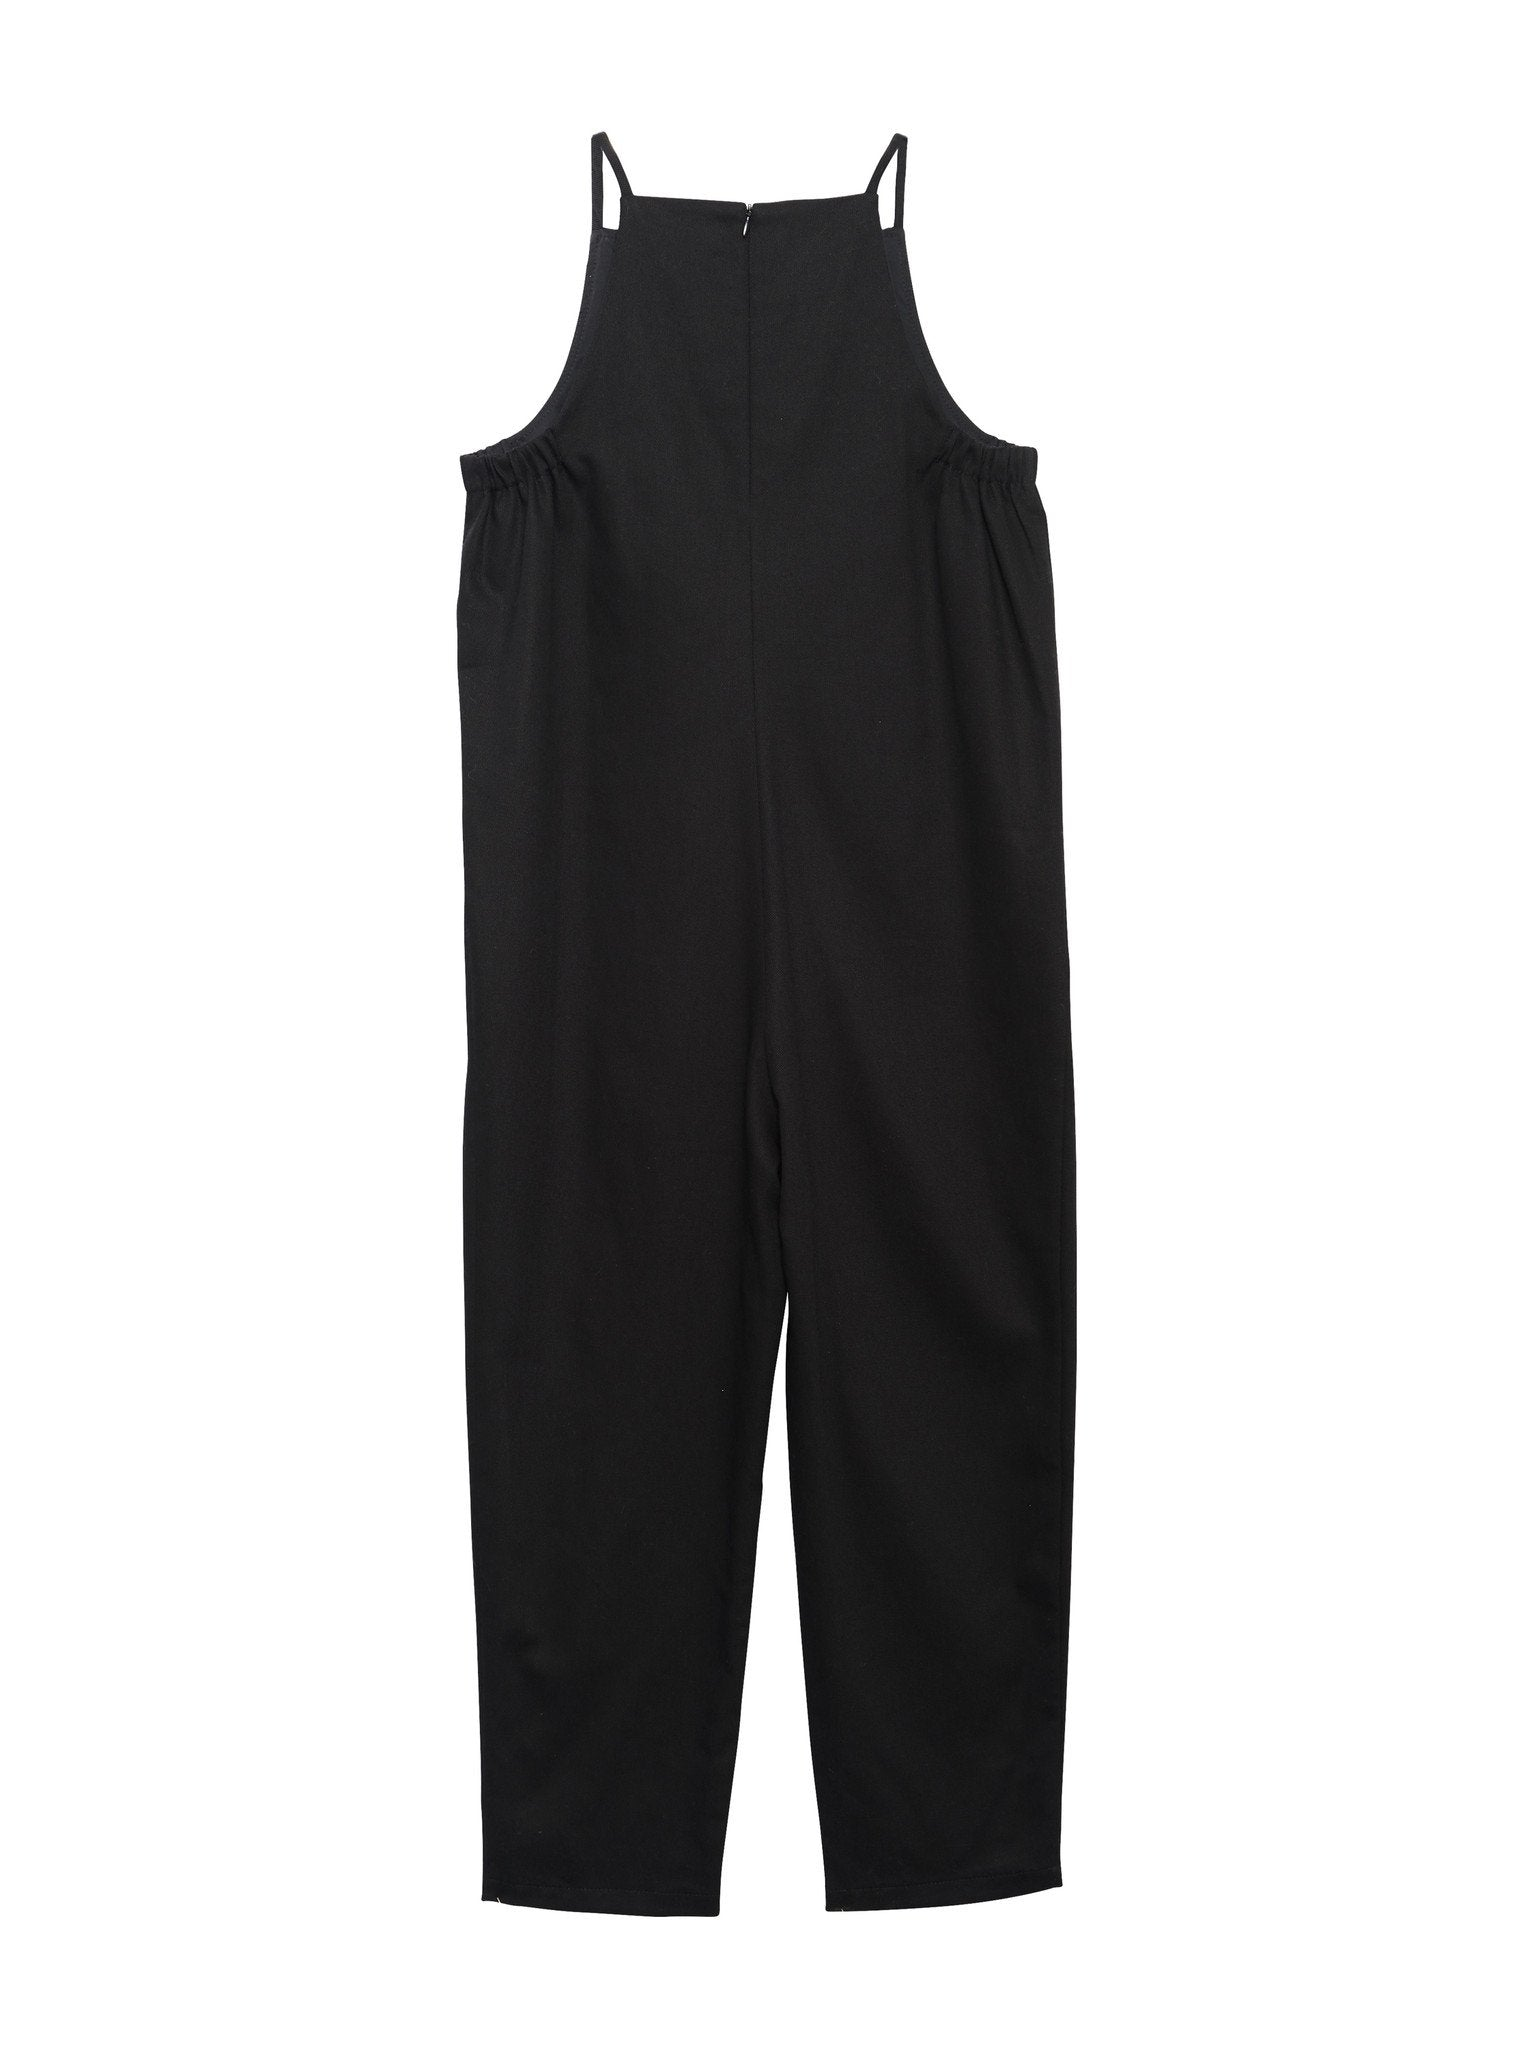 Yard Jumpsuit / Black Twill